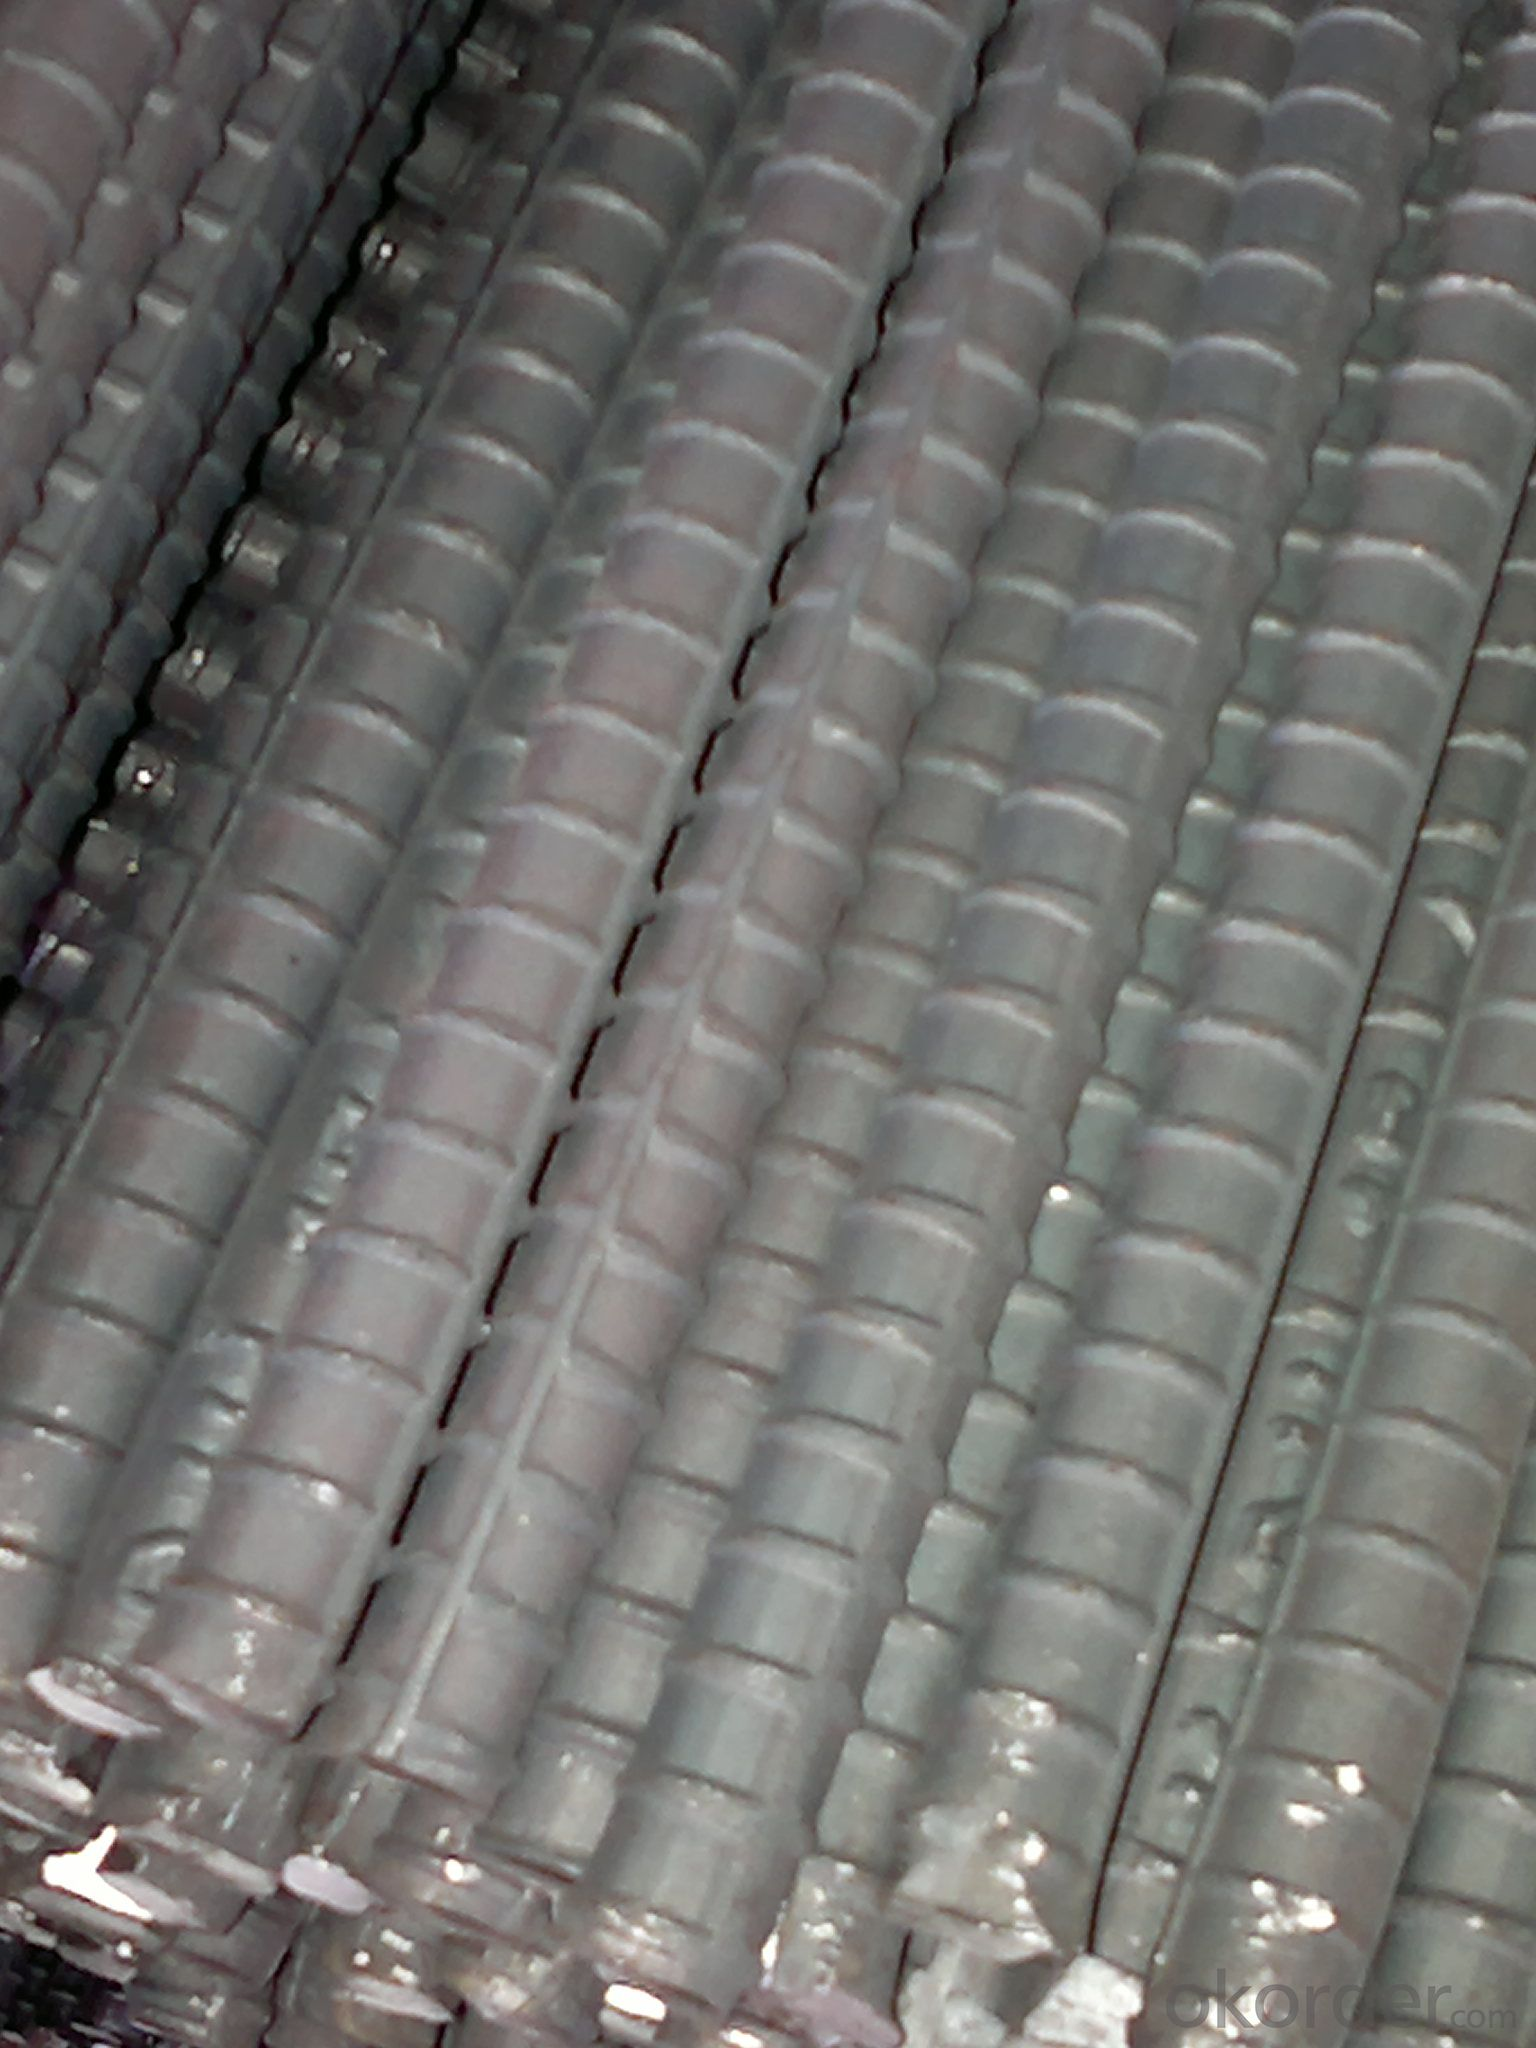 Steel Reinforcing Rebars for Construction Concrete